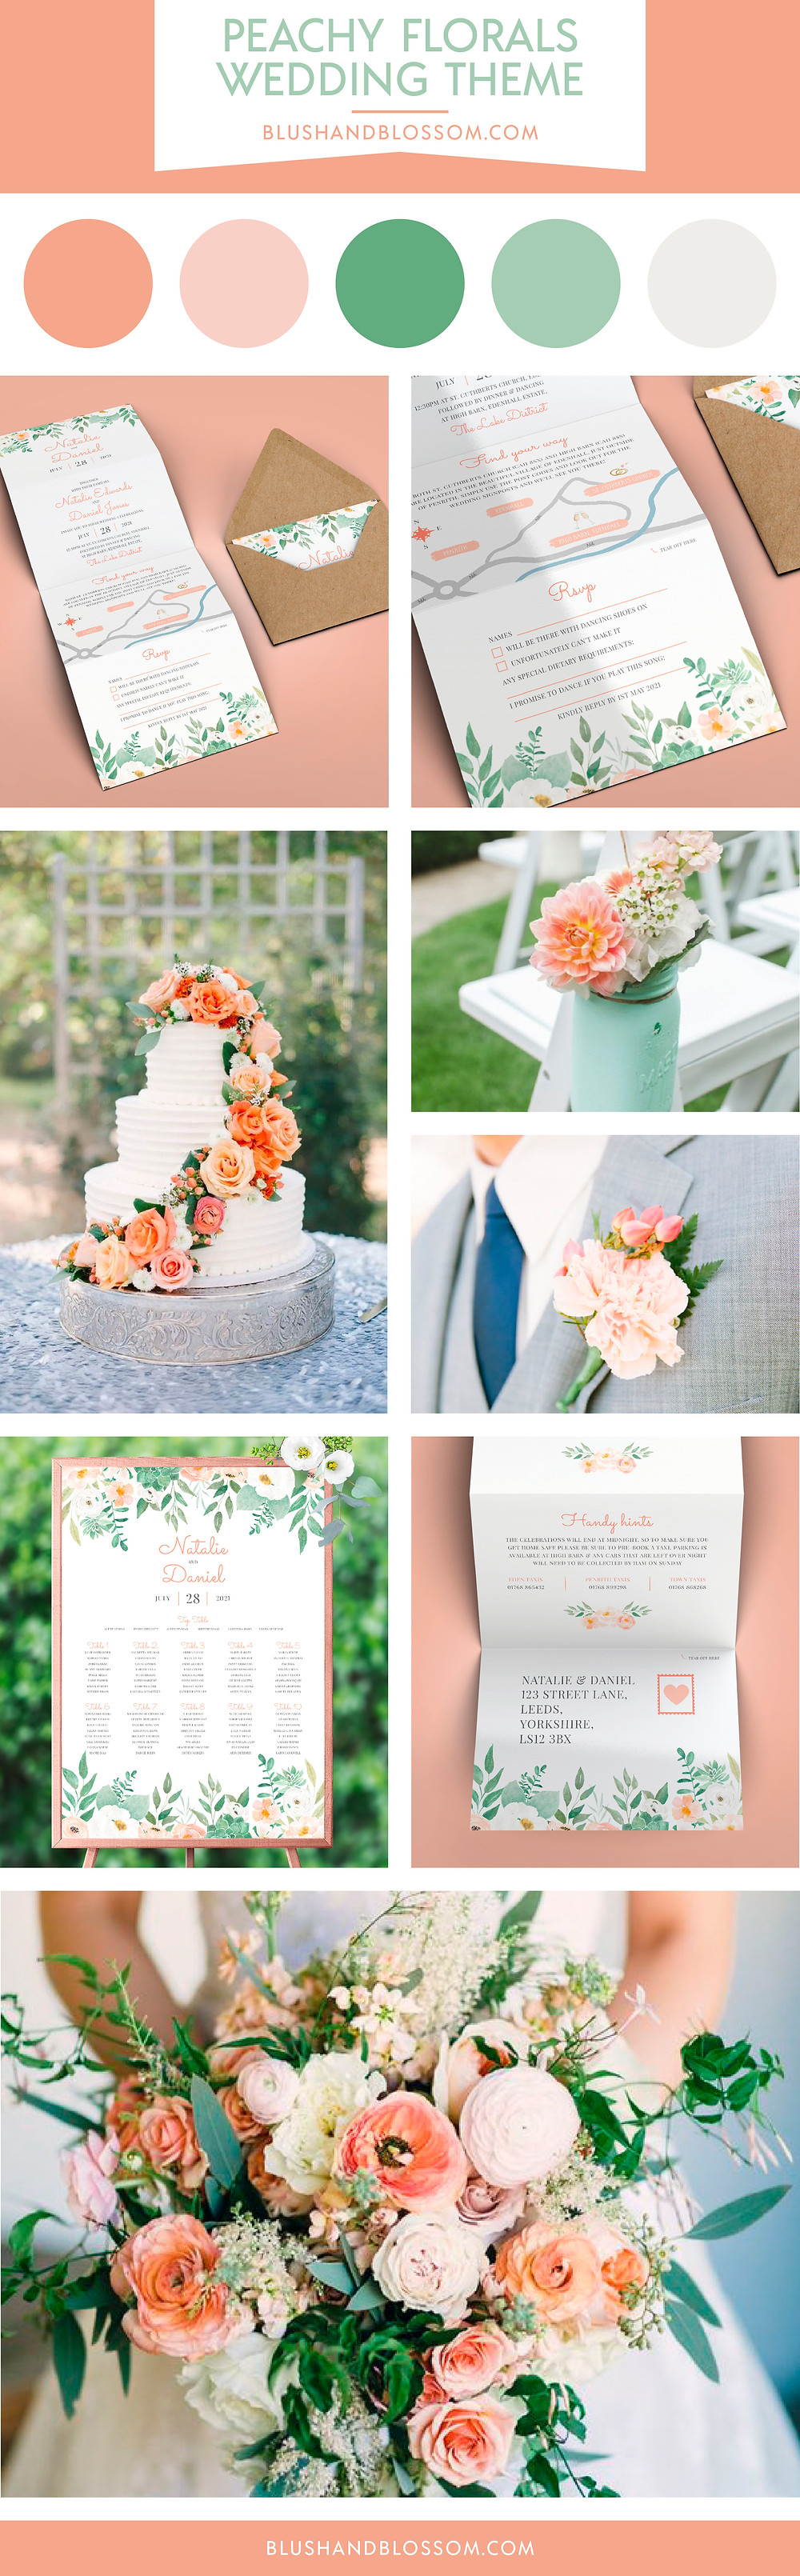 Peach and greenery floral wedding theme and inspiration